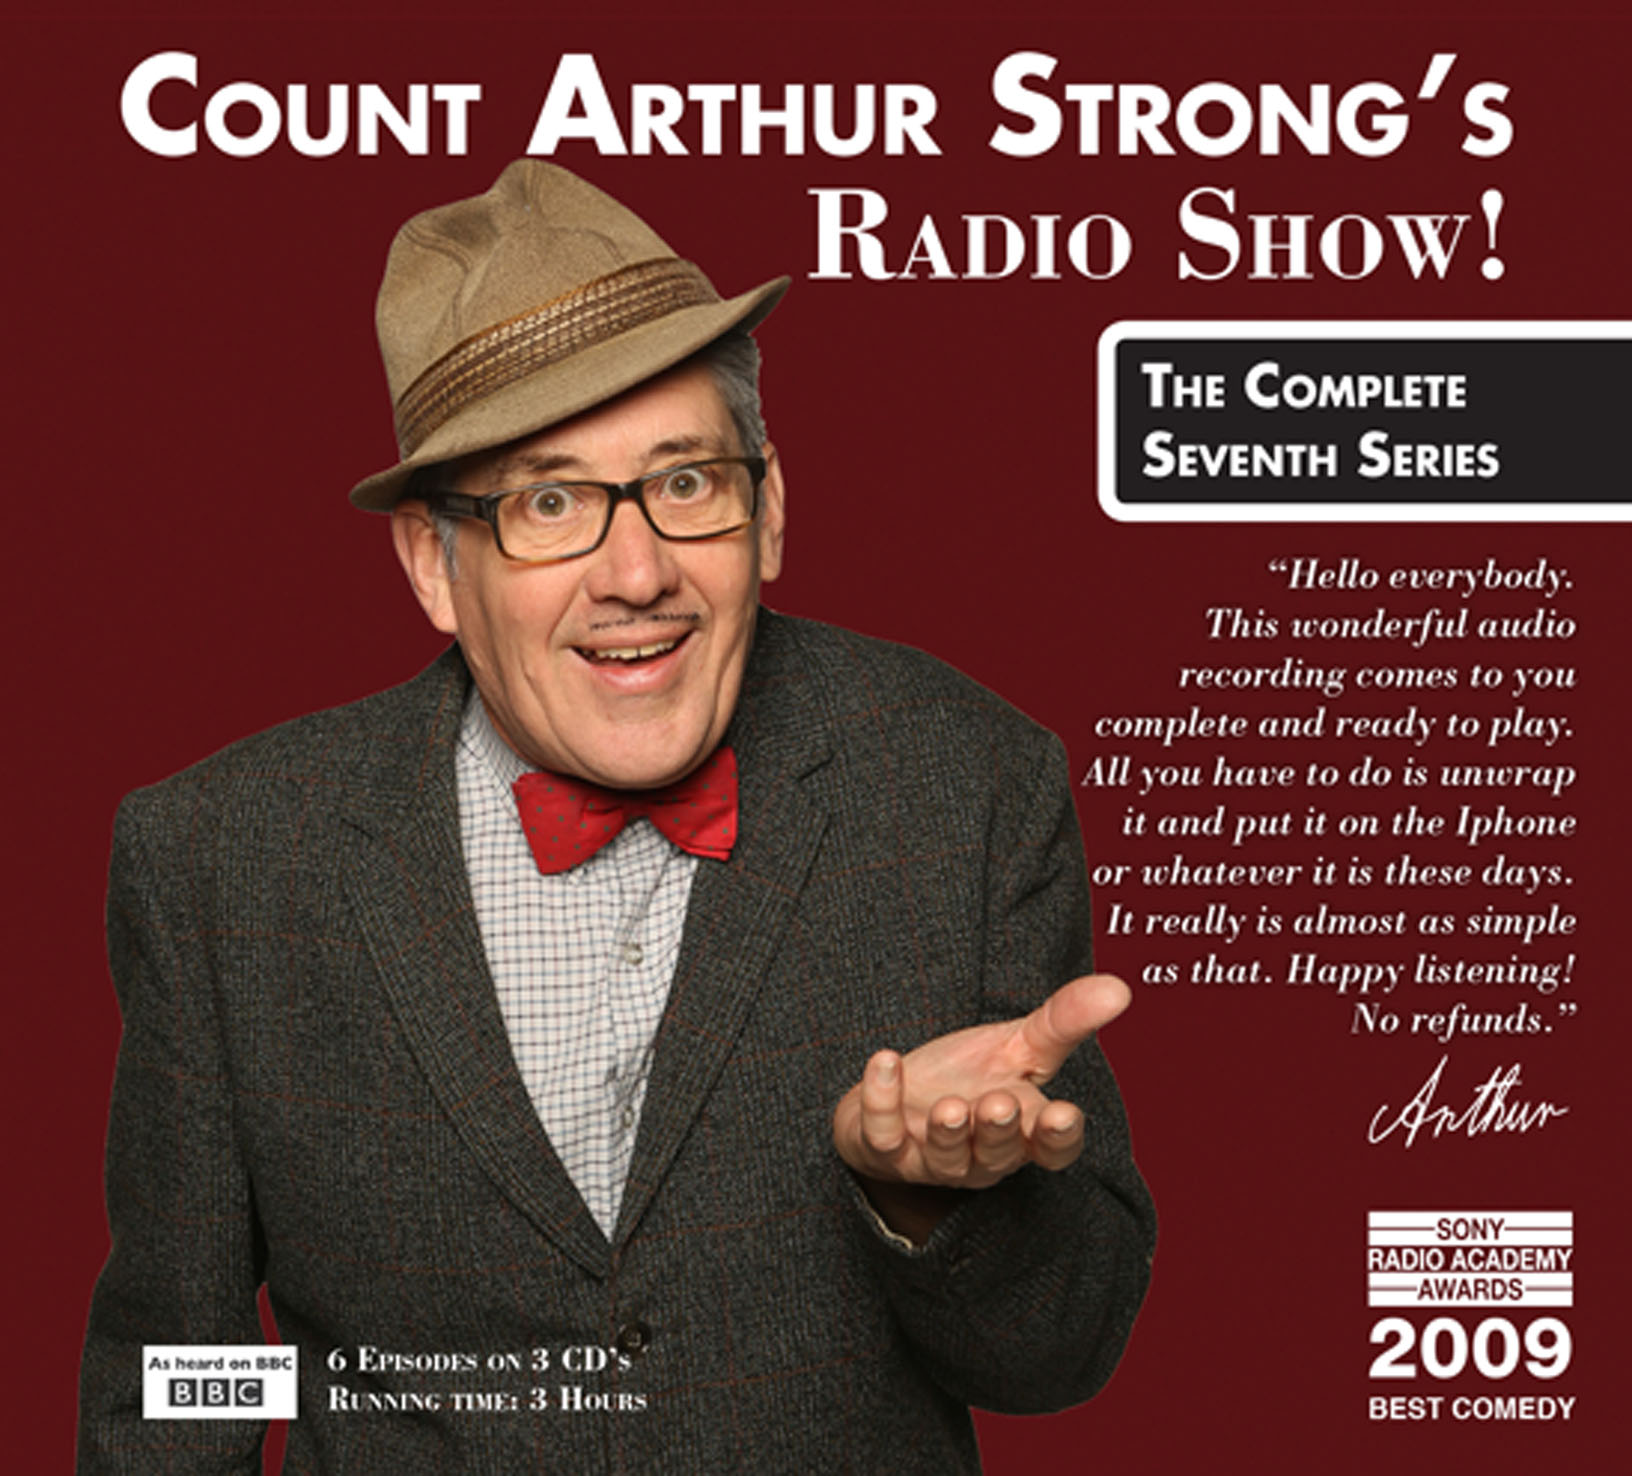 Count arthur strong's radio show! The complete seventh series ep.